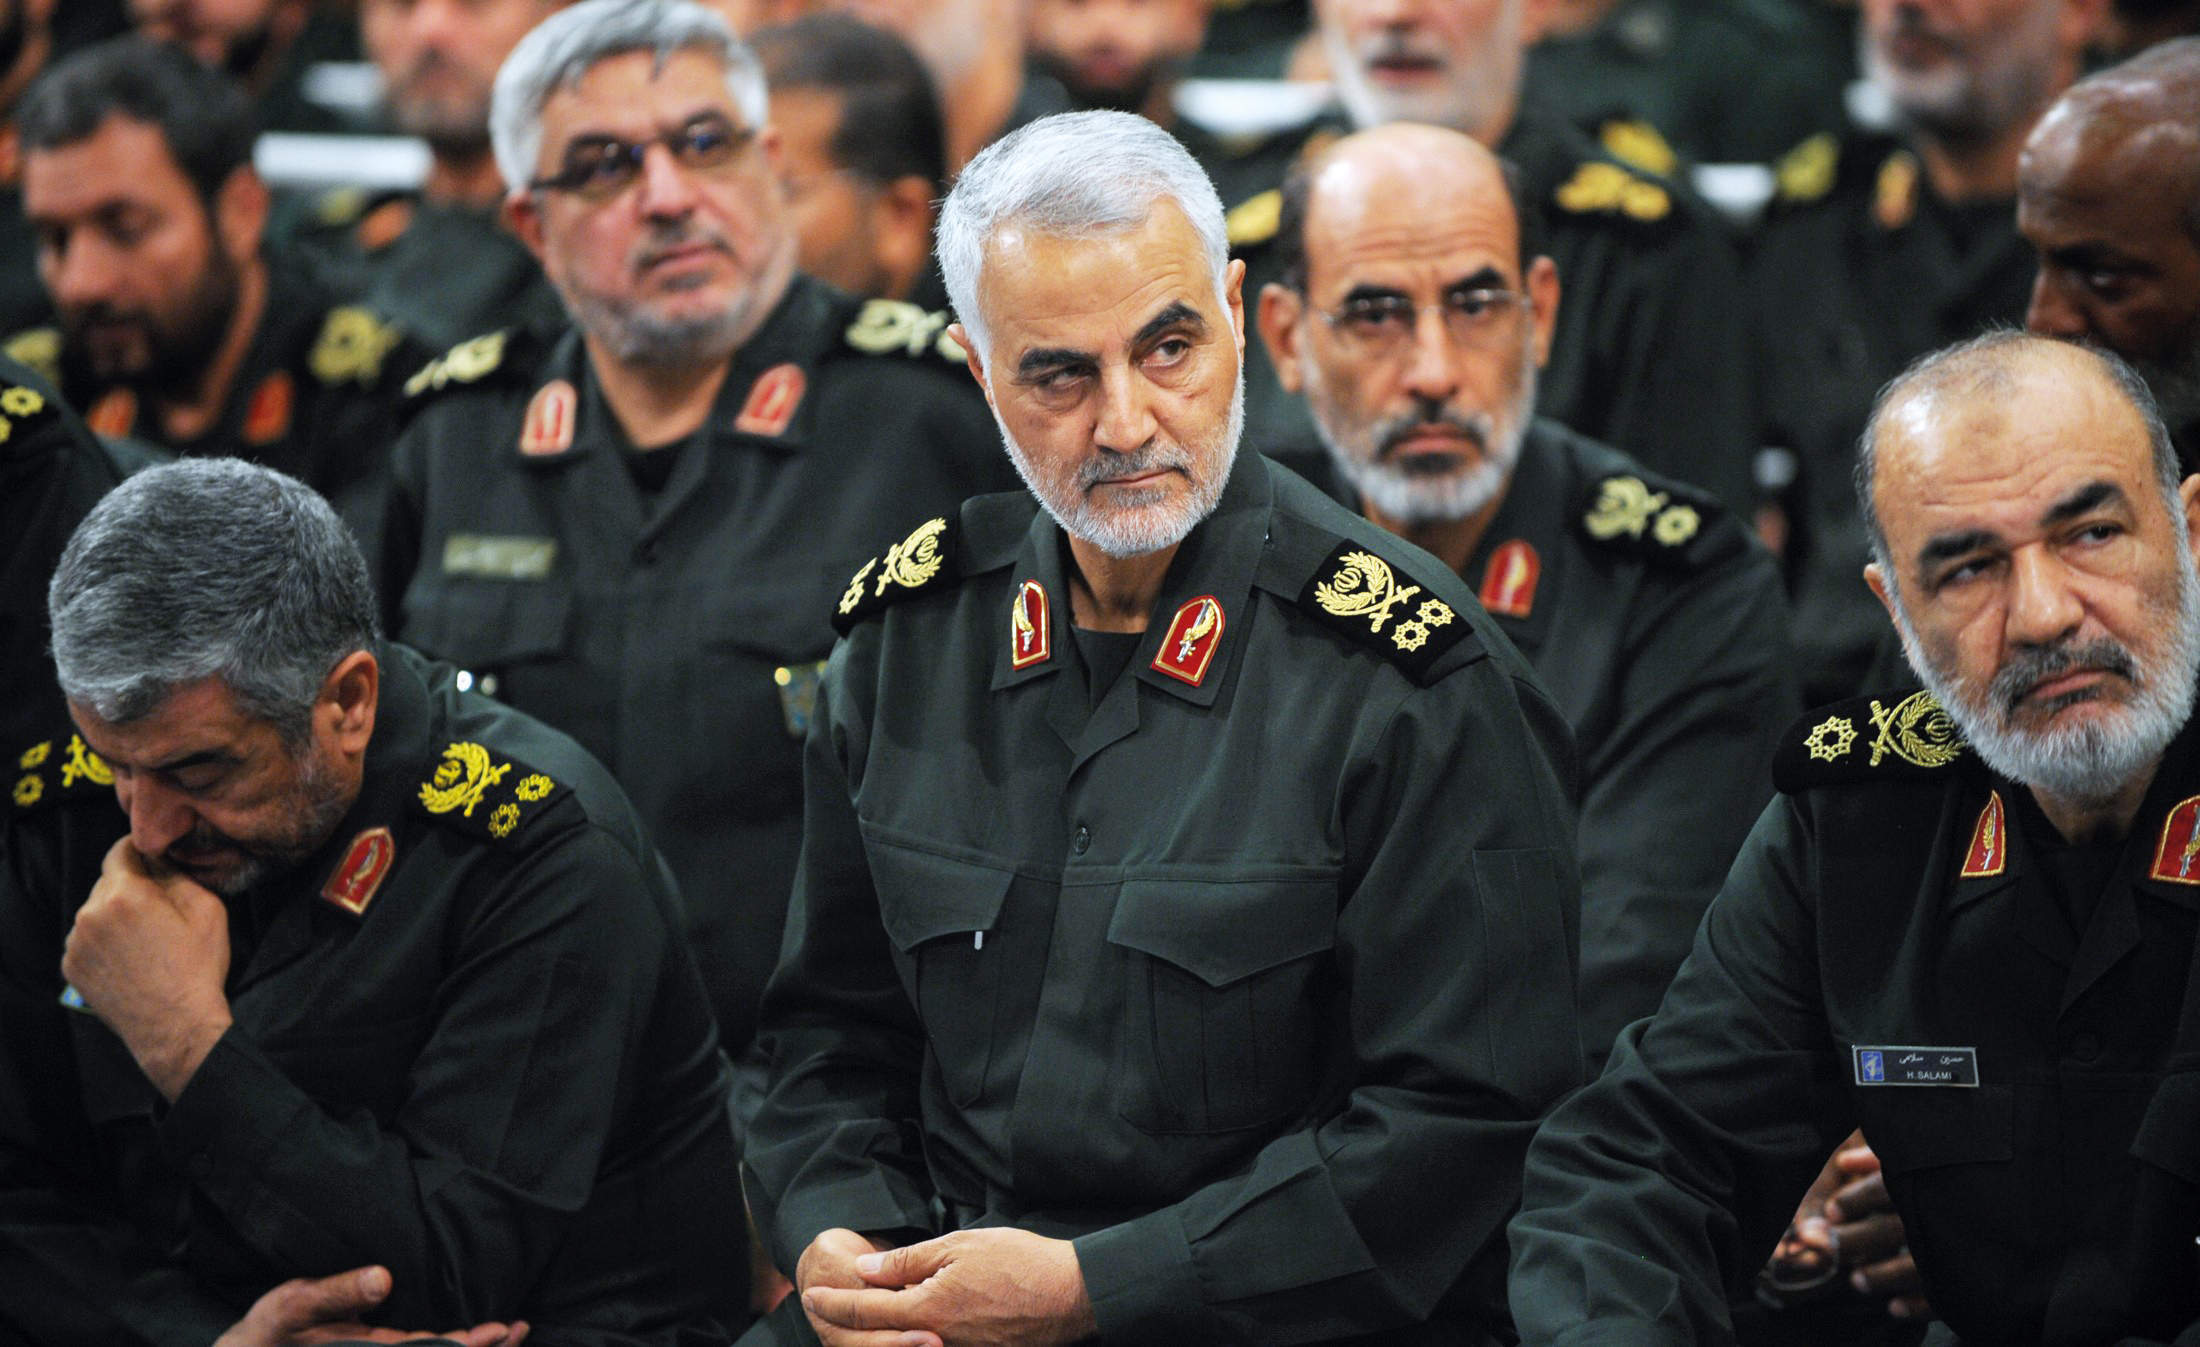 Qasem Soleimani and the remaking of the Middle East